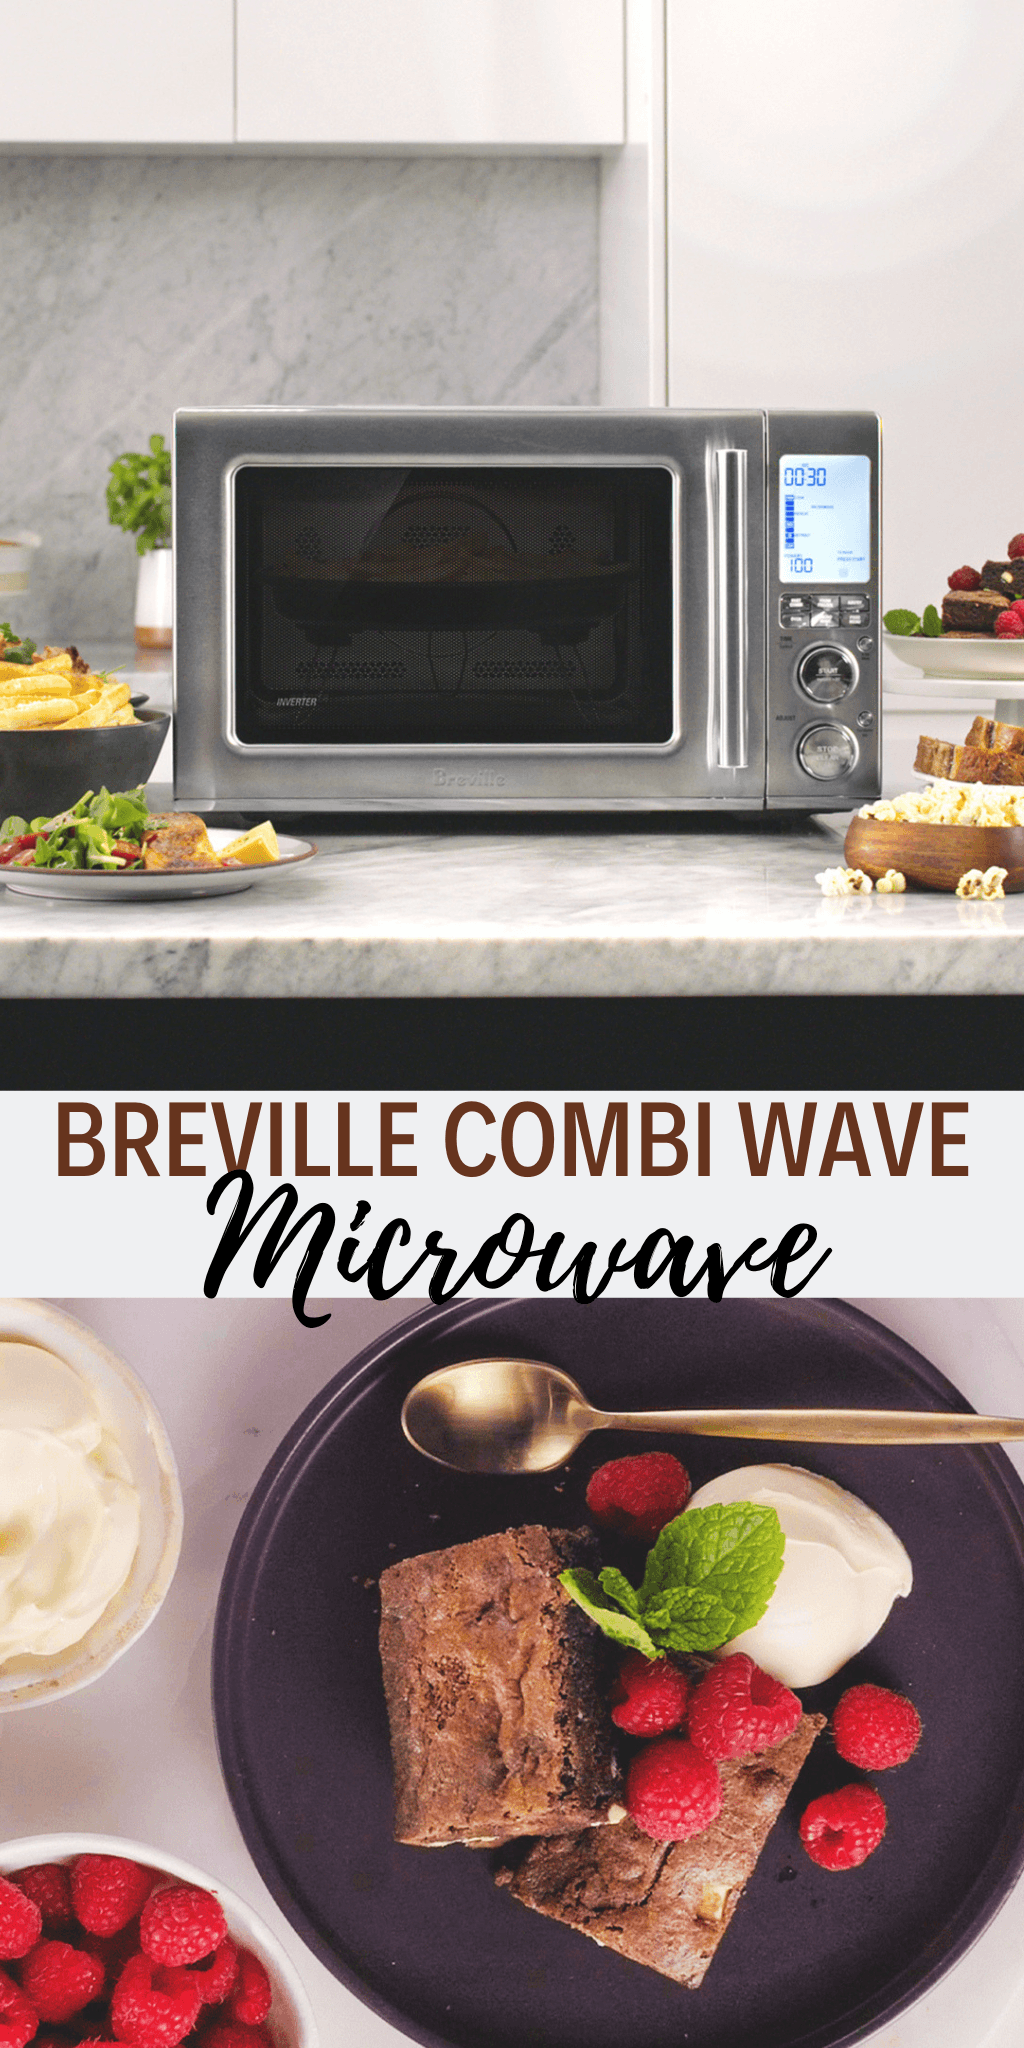 Everyone wants an Air Fryer and Breville has made it easy with their Combi Wave 3-in-1 Microwave at Best Buy. A convection, microwave and Air Fryer.